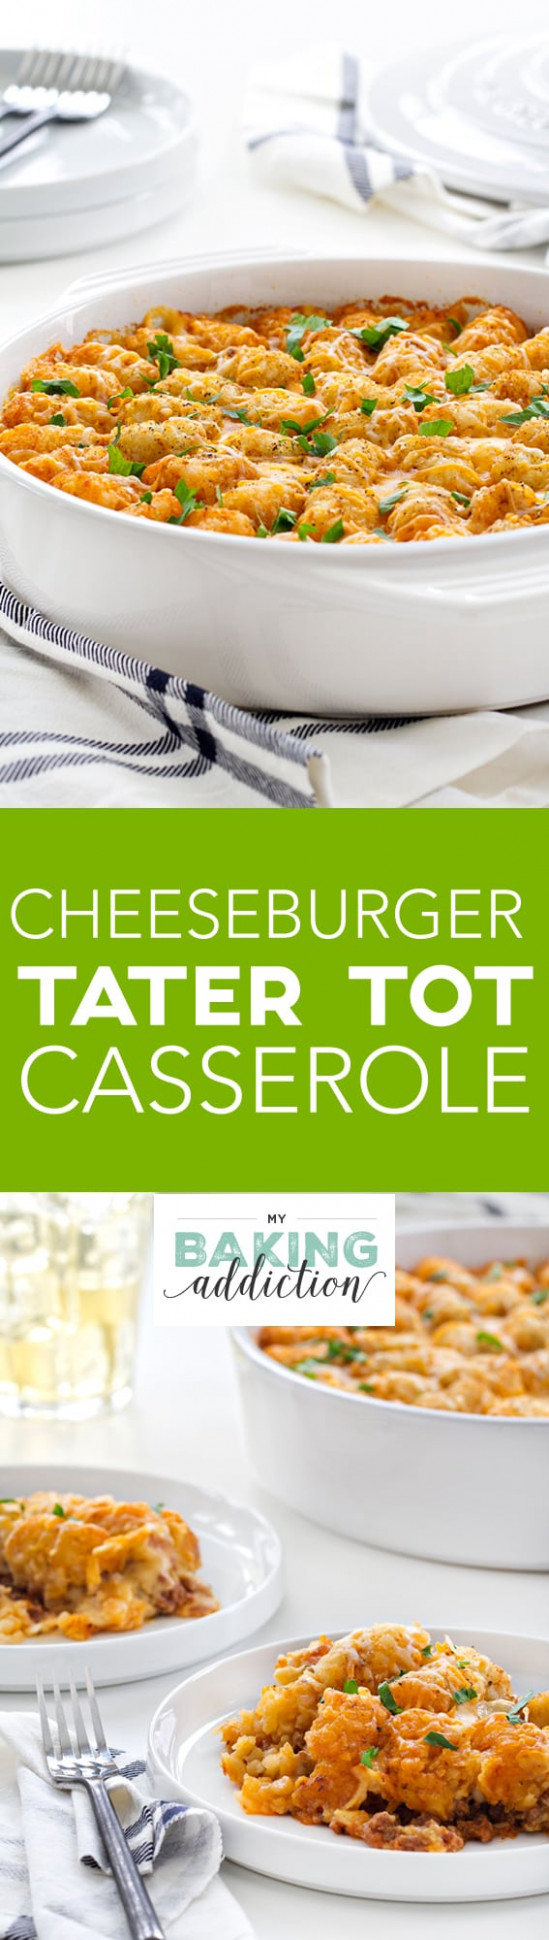 Cheeseburger Tater Tot Casserole - My Baking Addiction